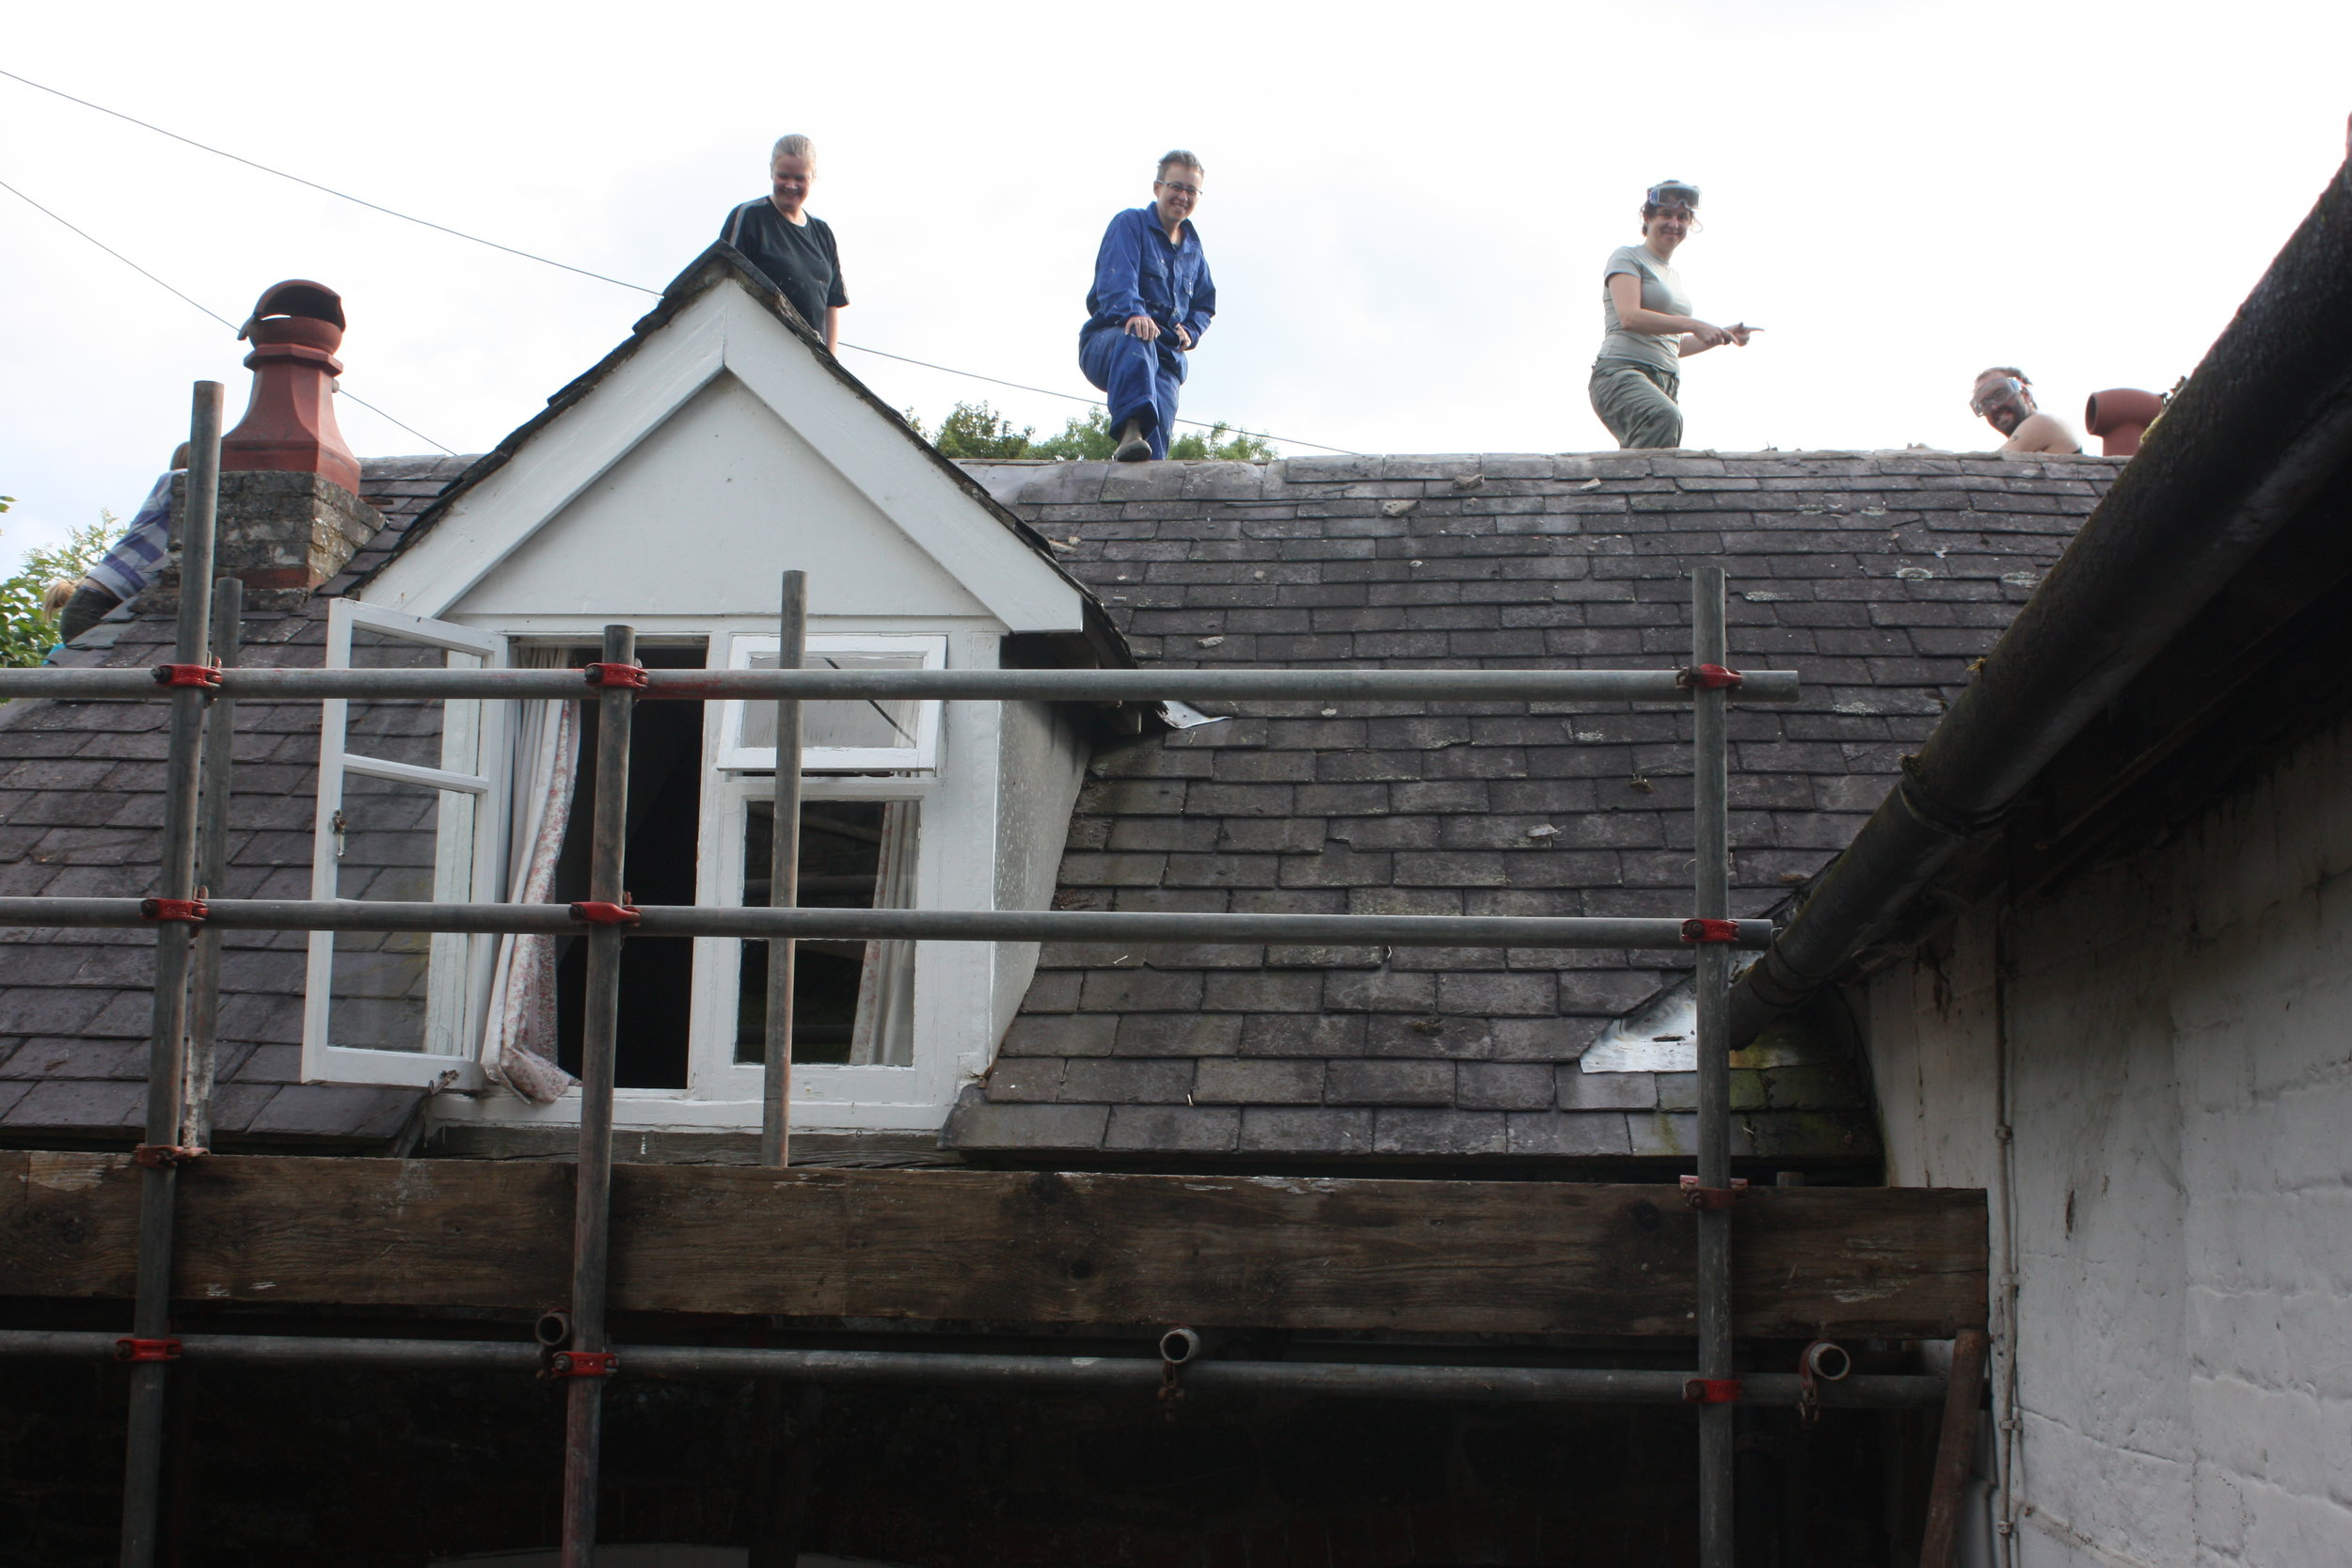 BB members working on roof repairs